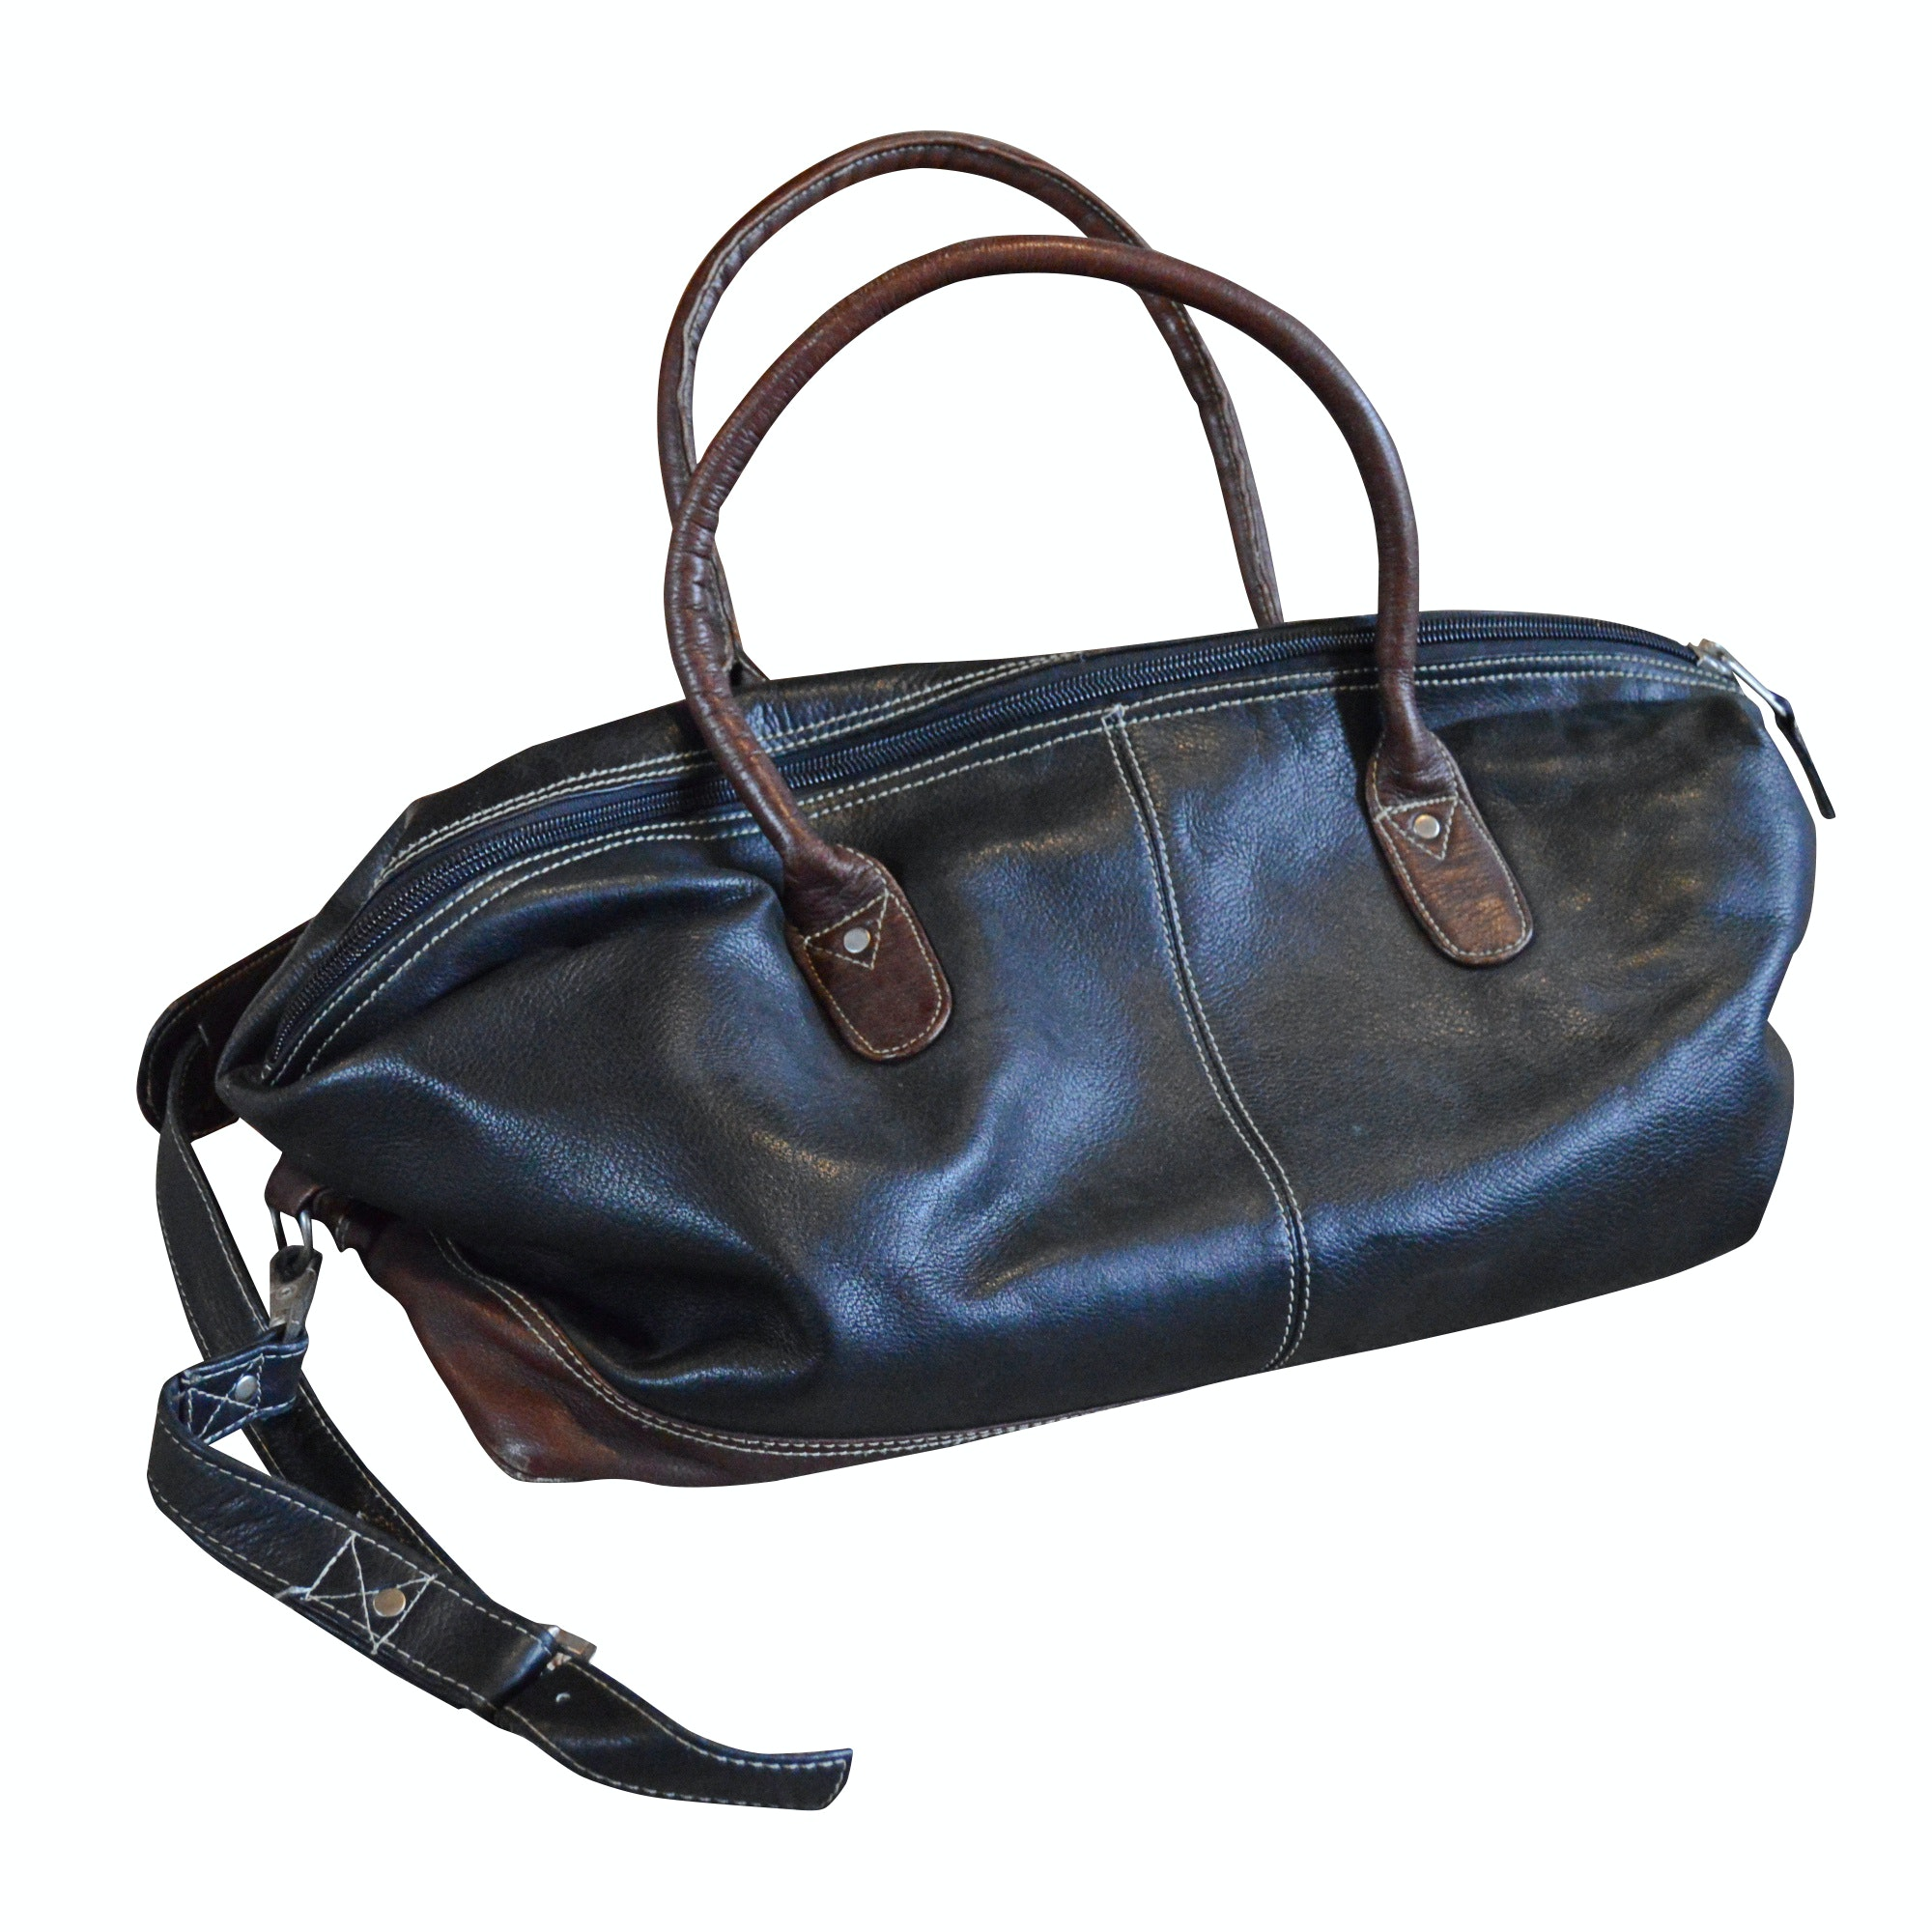 Two-Tone Leather Weekender Bag, Made in Columbia